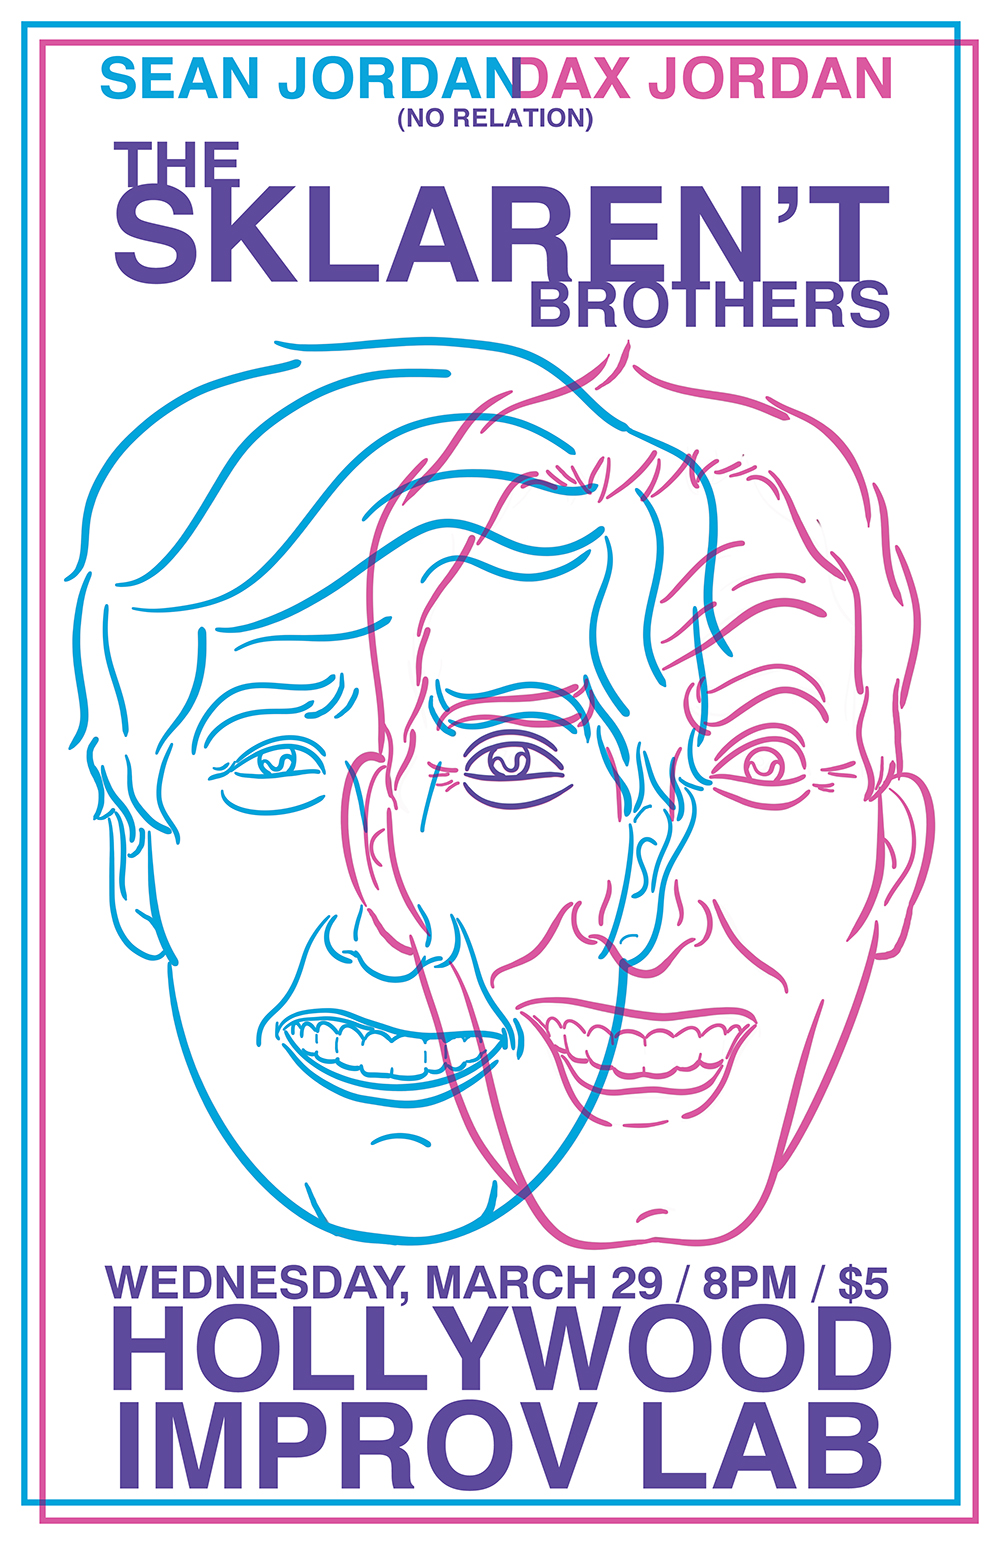 A poster for a comedy show I made for two friends who share the same last name, look vaguely related, yet share no familial ties.